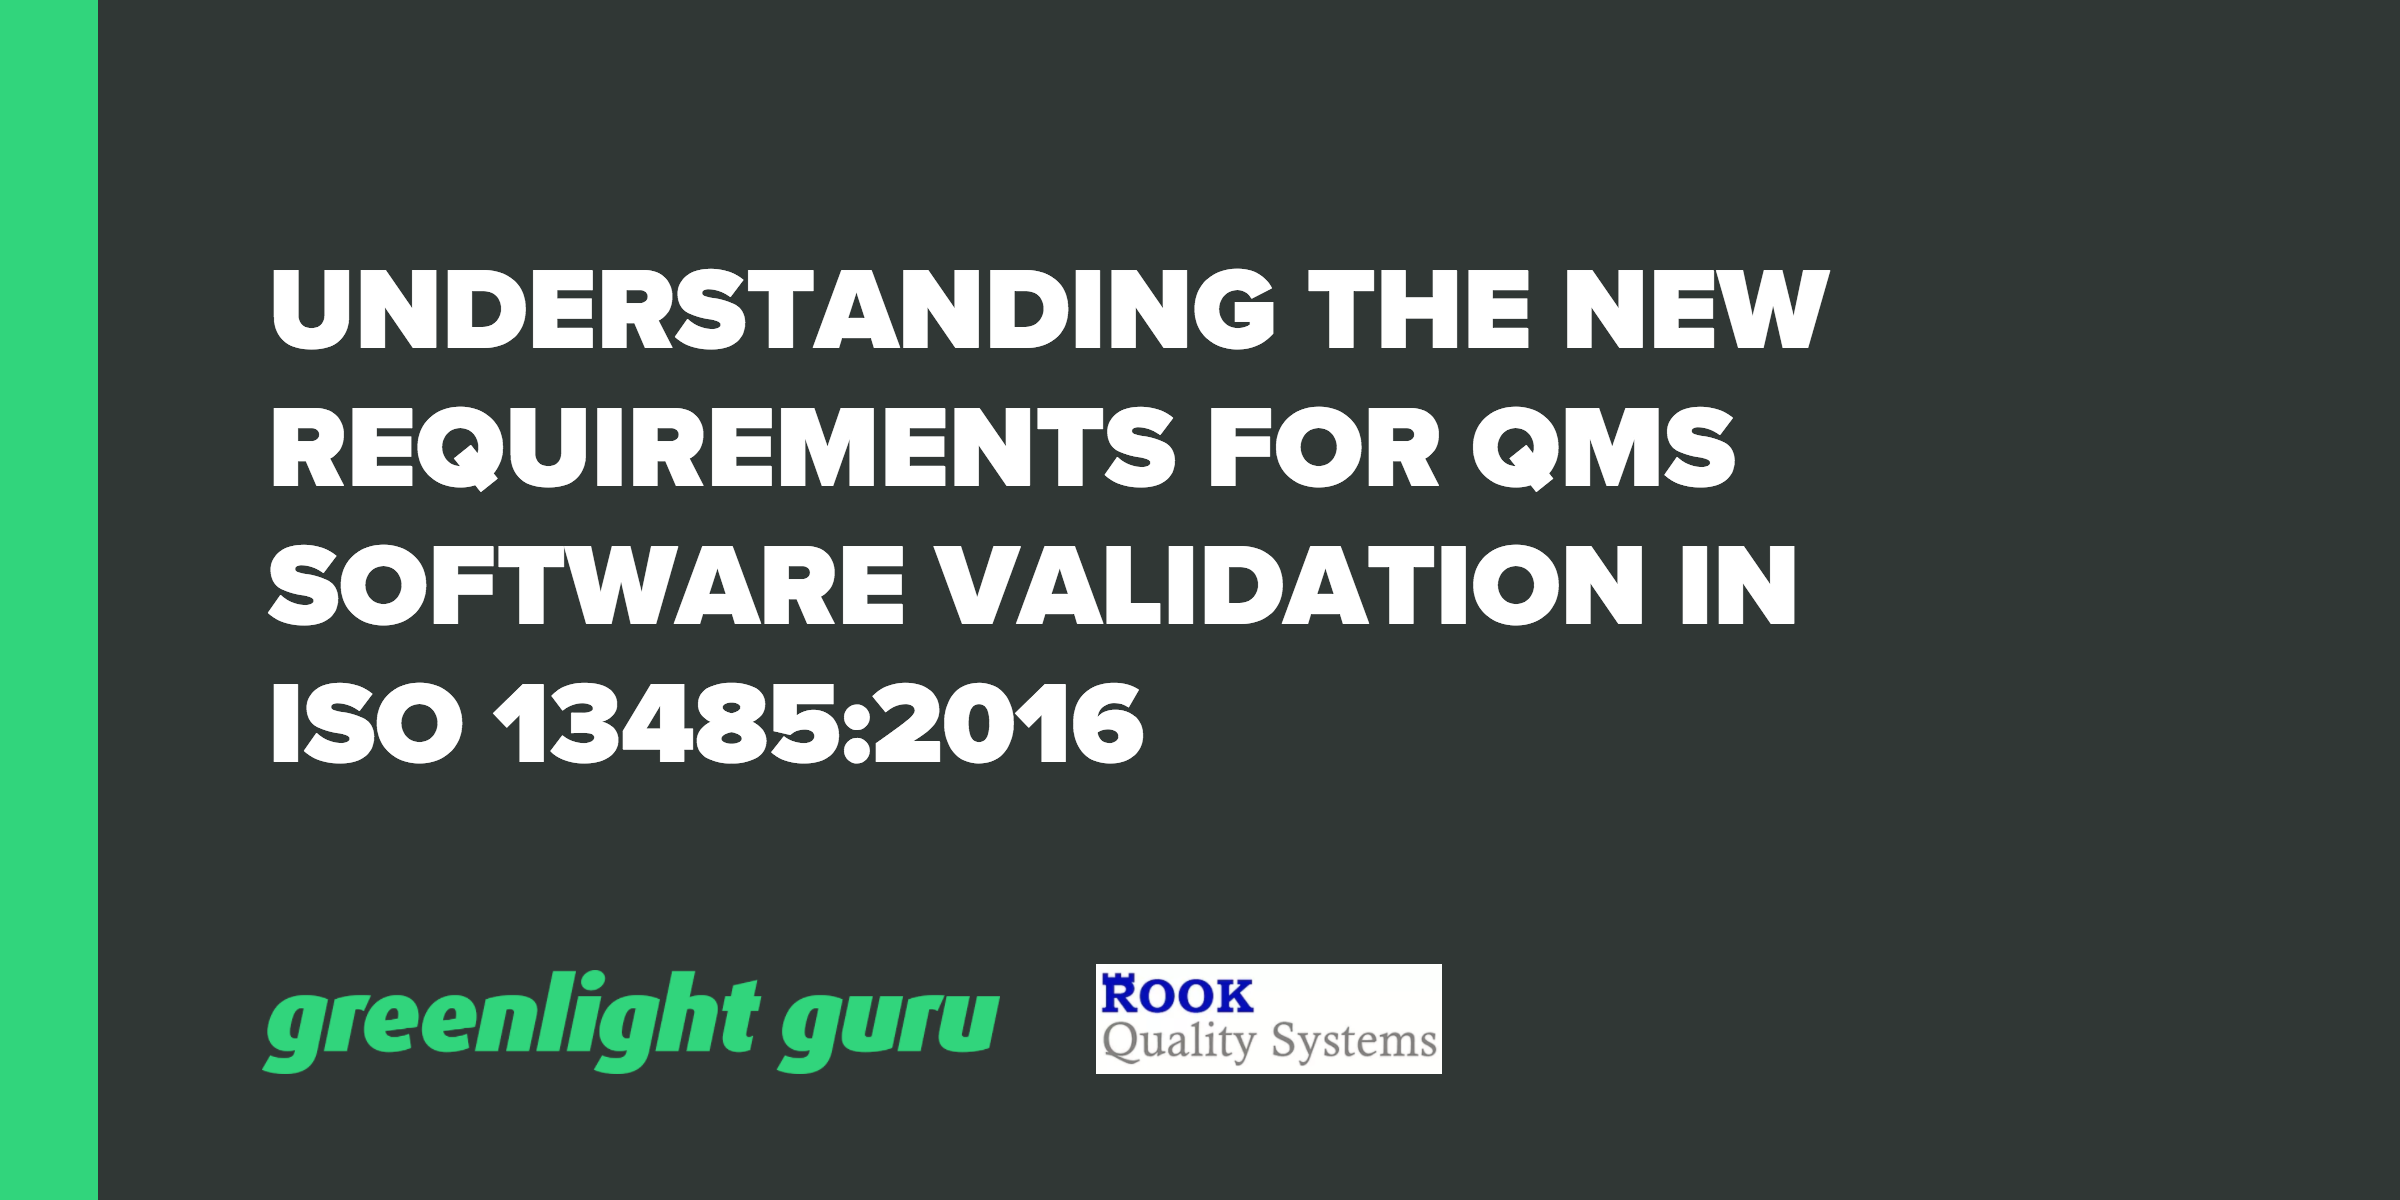 Understanding the New Requirements for QMS Software Validation in ISO 13485:2016 - Featured Image